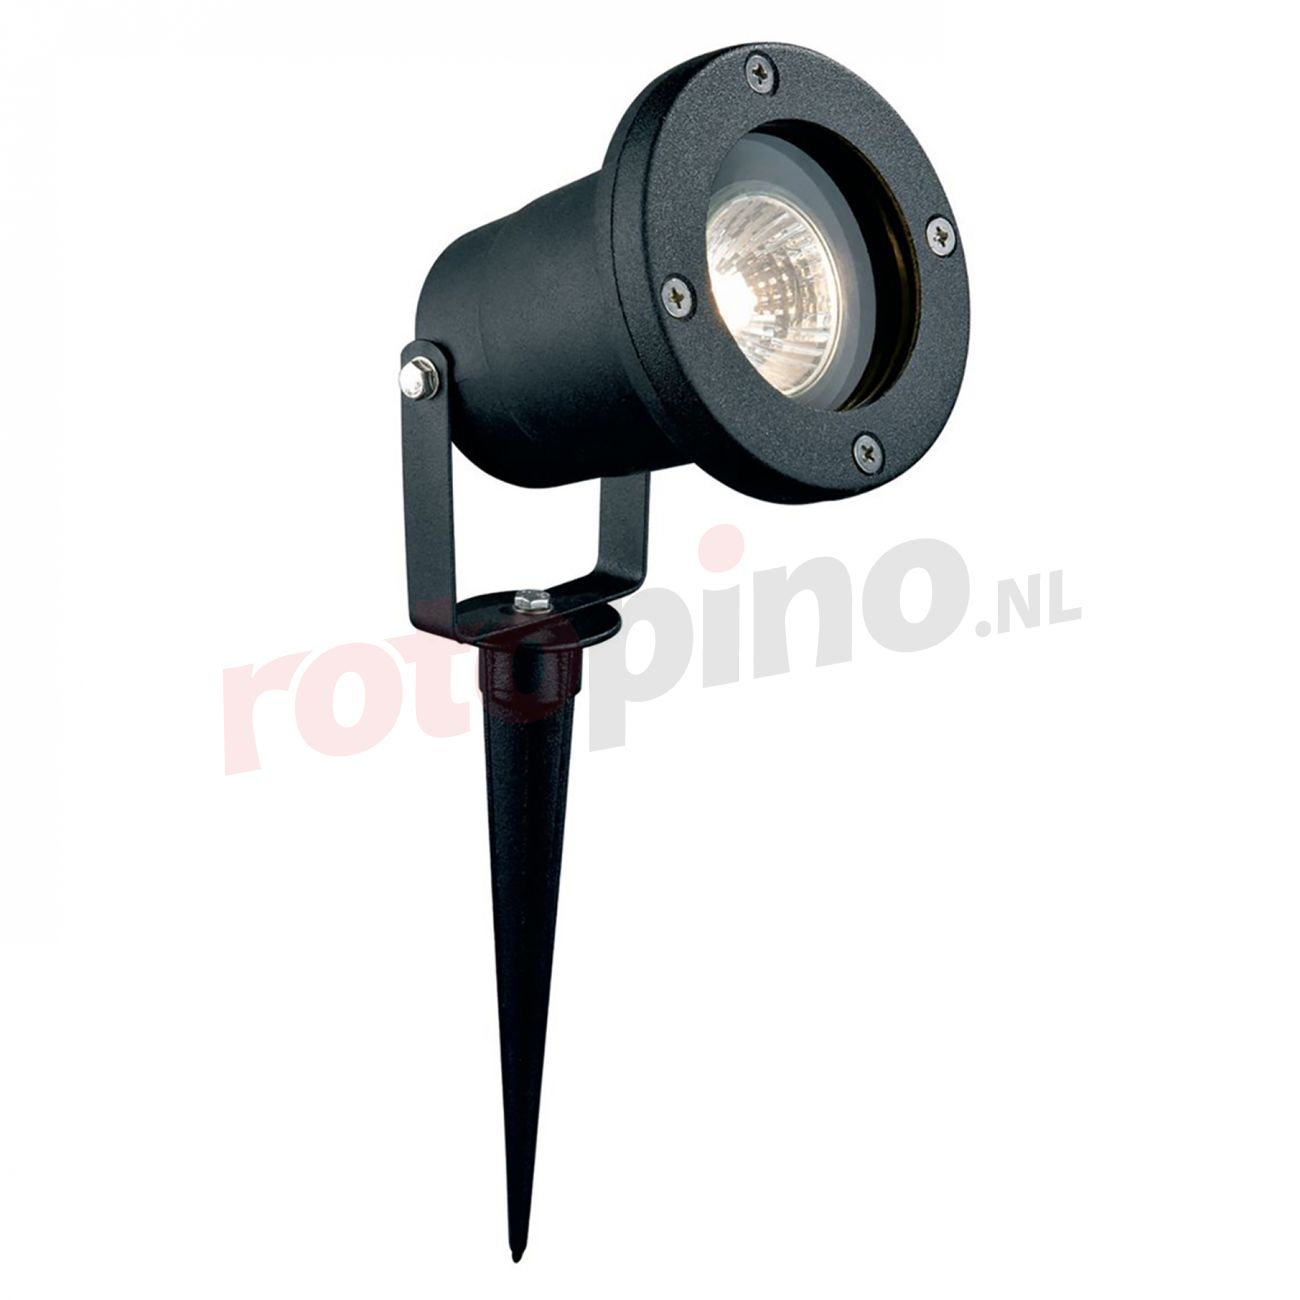 Buitenlamp Led Buitenlamp Led Puled Philips 174123010